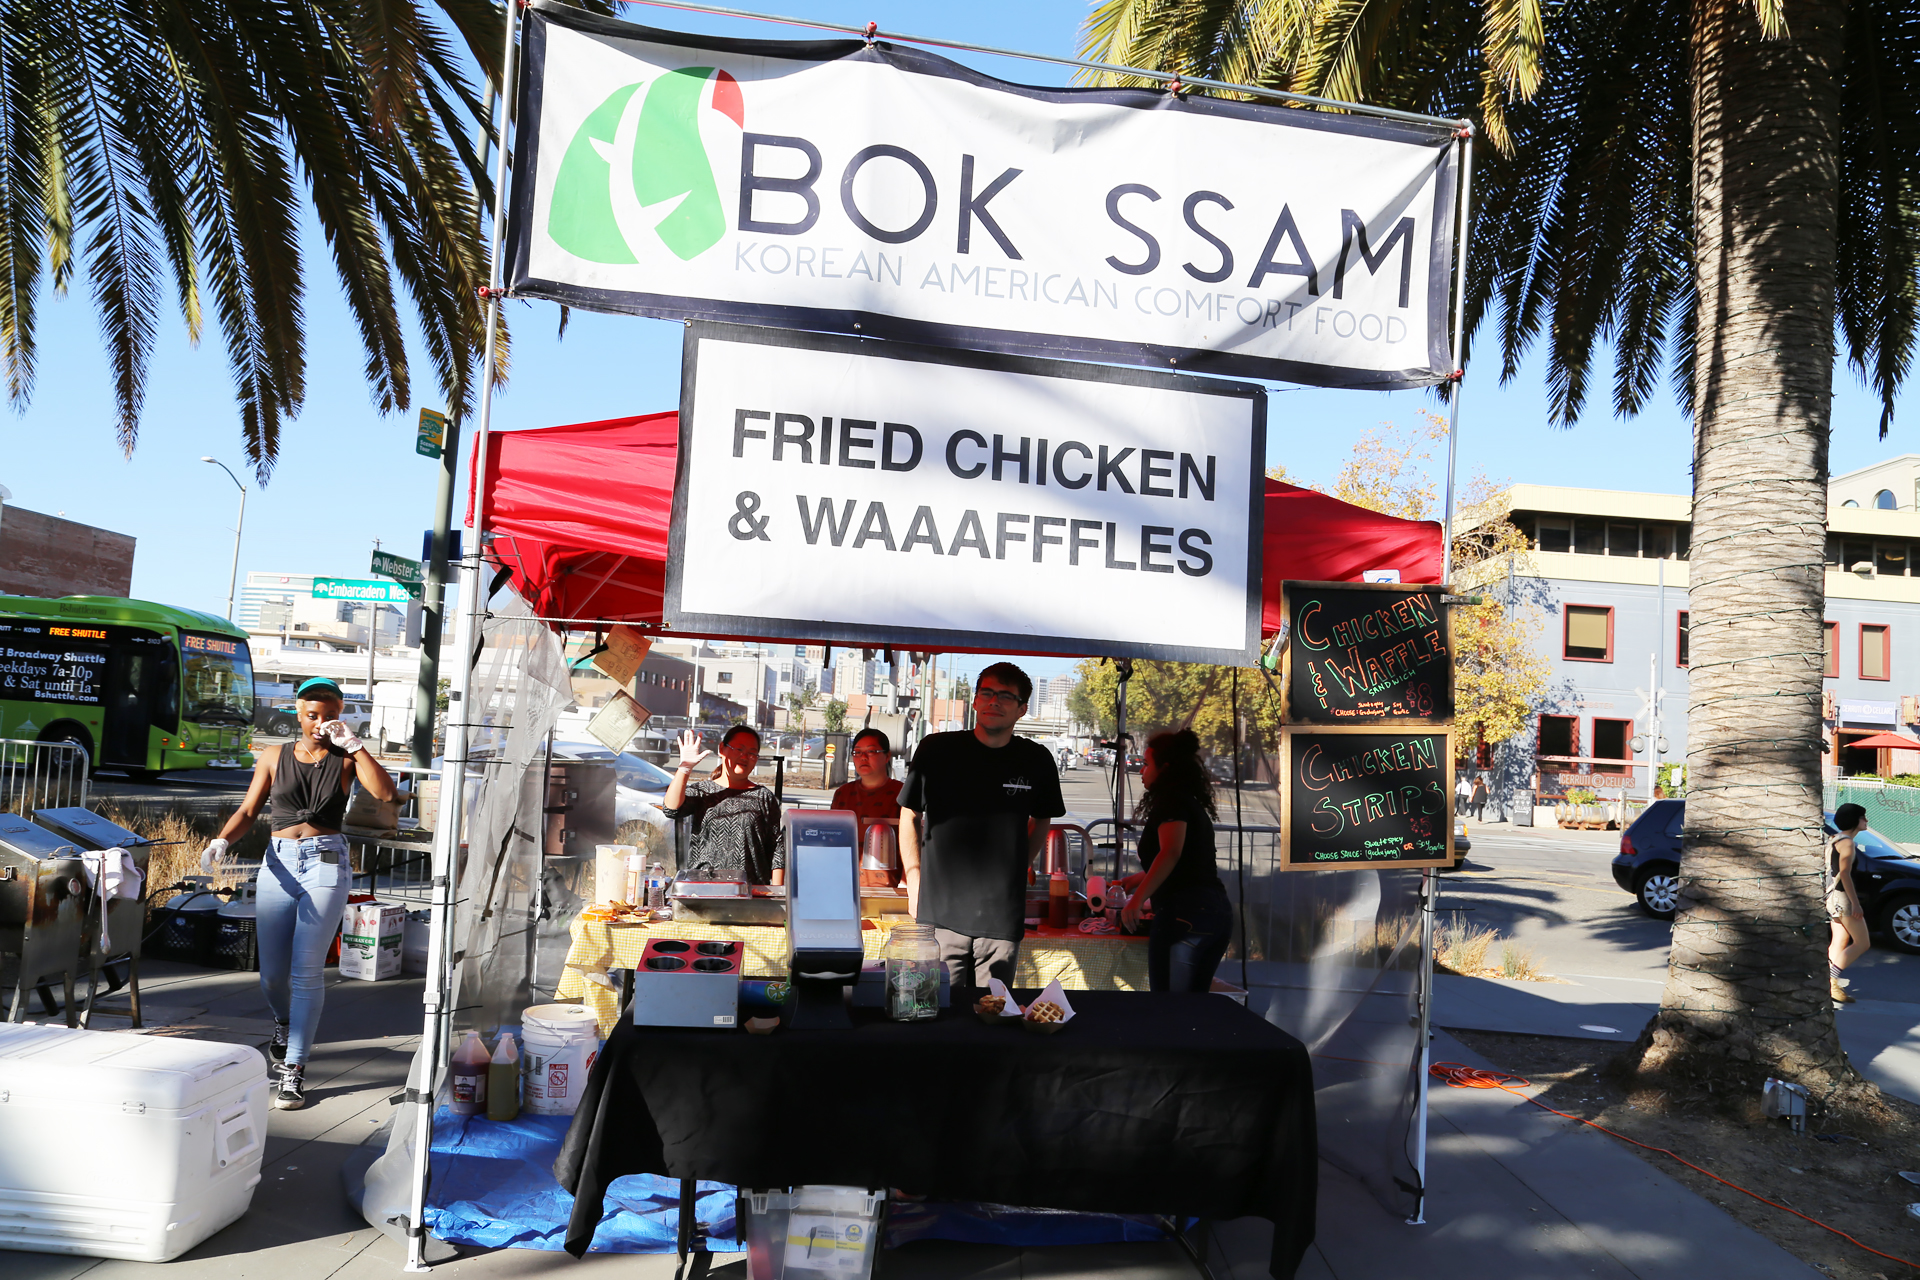 BOK SSAM booth